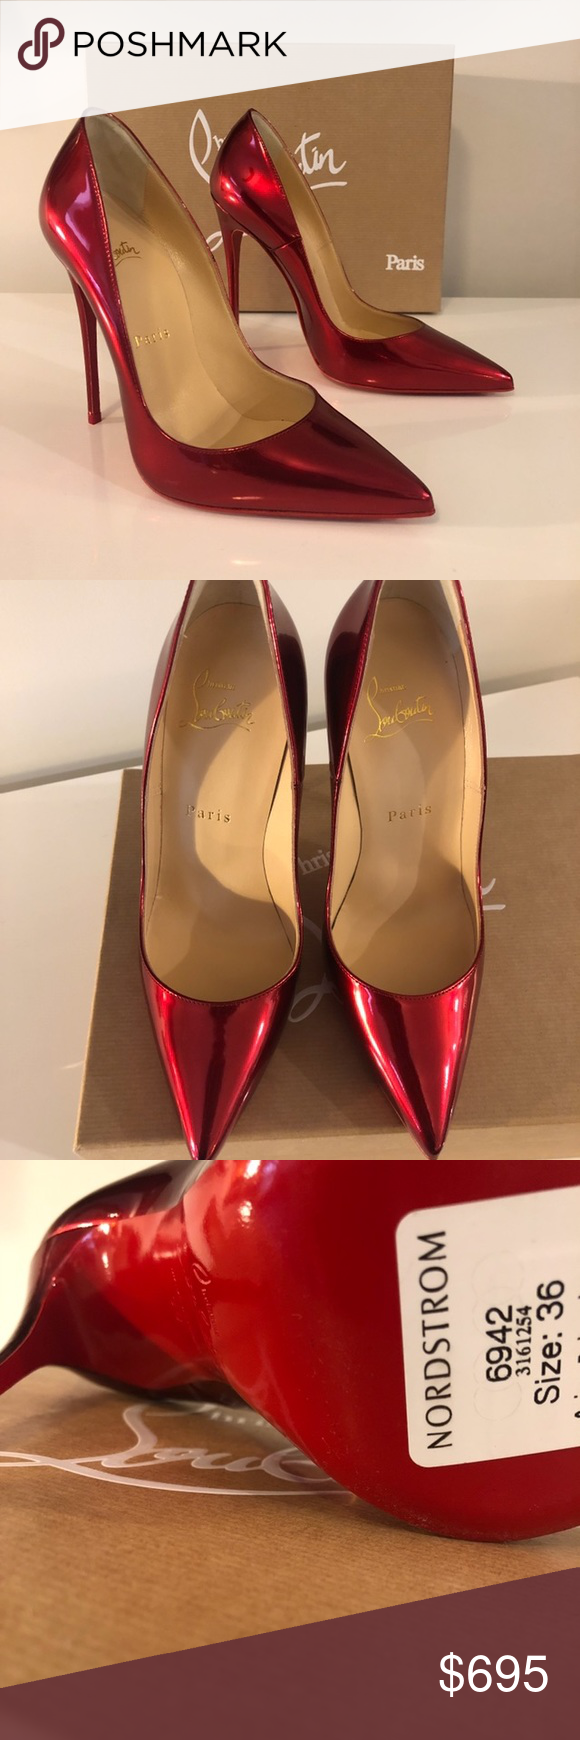 reputable site b7f2d f2492 So Kate Metallic Red Christian Louboutins Too small for me ...